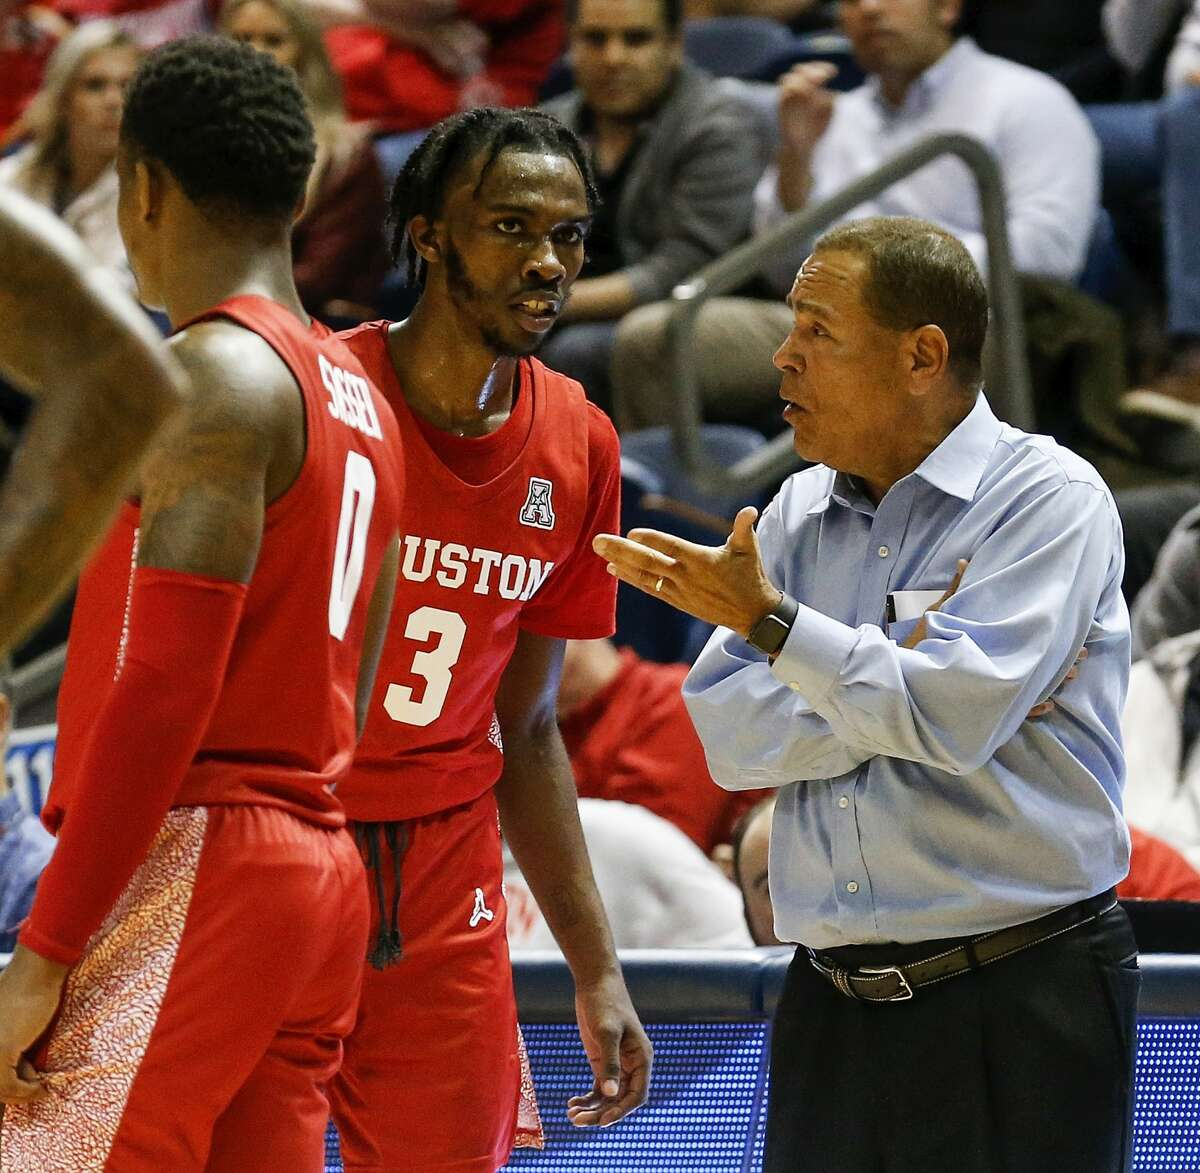 Houston Cougars head coach Kelvin Sampson talks with guard DeJon Jarreau (3) during the second half of the NCAA basketball game between the Rice Owls and the Houston Cougars at Tudor Fieldhouse in Houston, TX on Tuesday, November 19, 2019. The Cougars defeated the Owls 97-89.